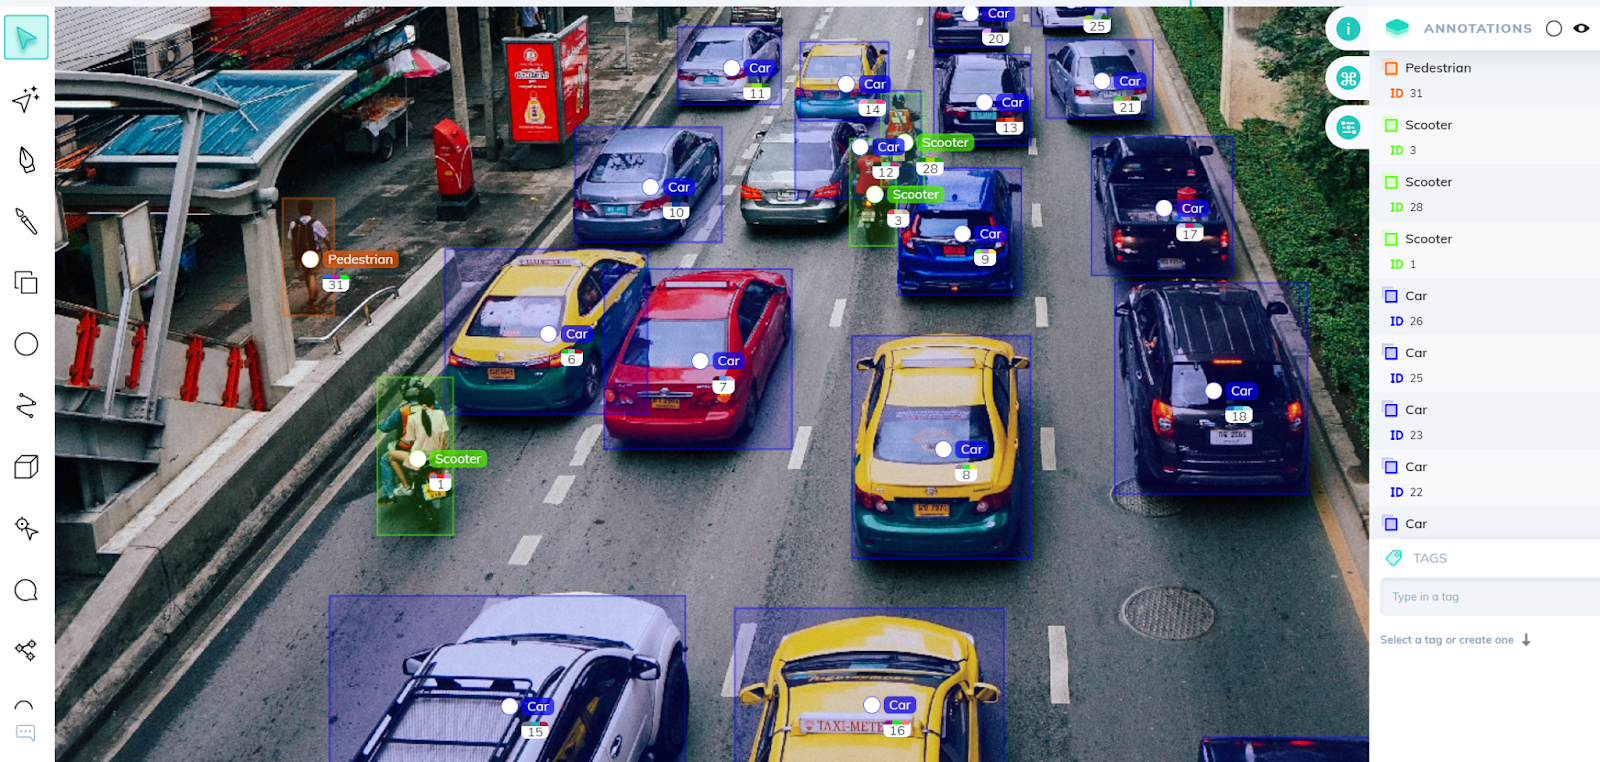 Bounding box annotation of vehicles for traffic flow analysis